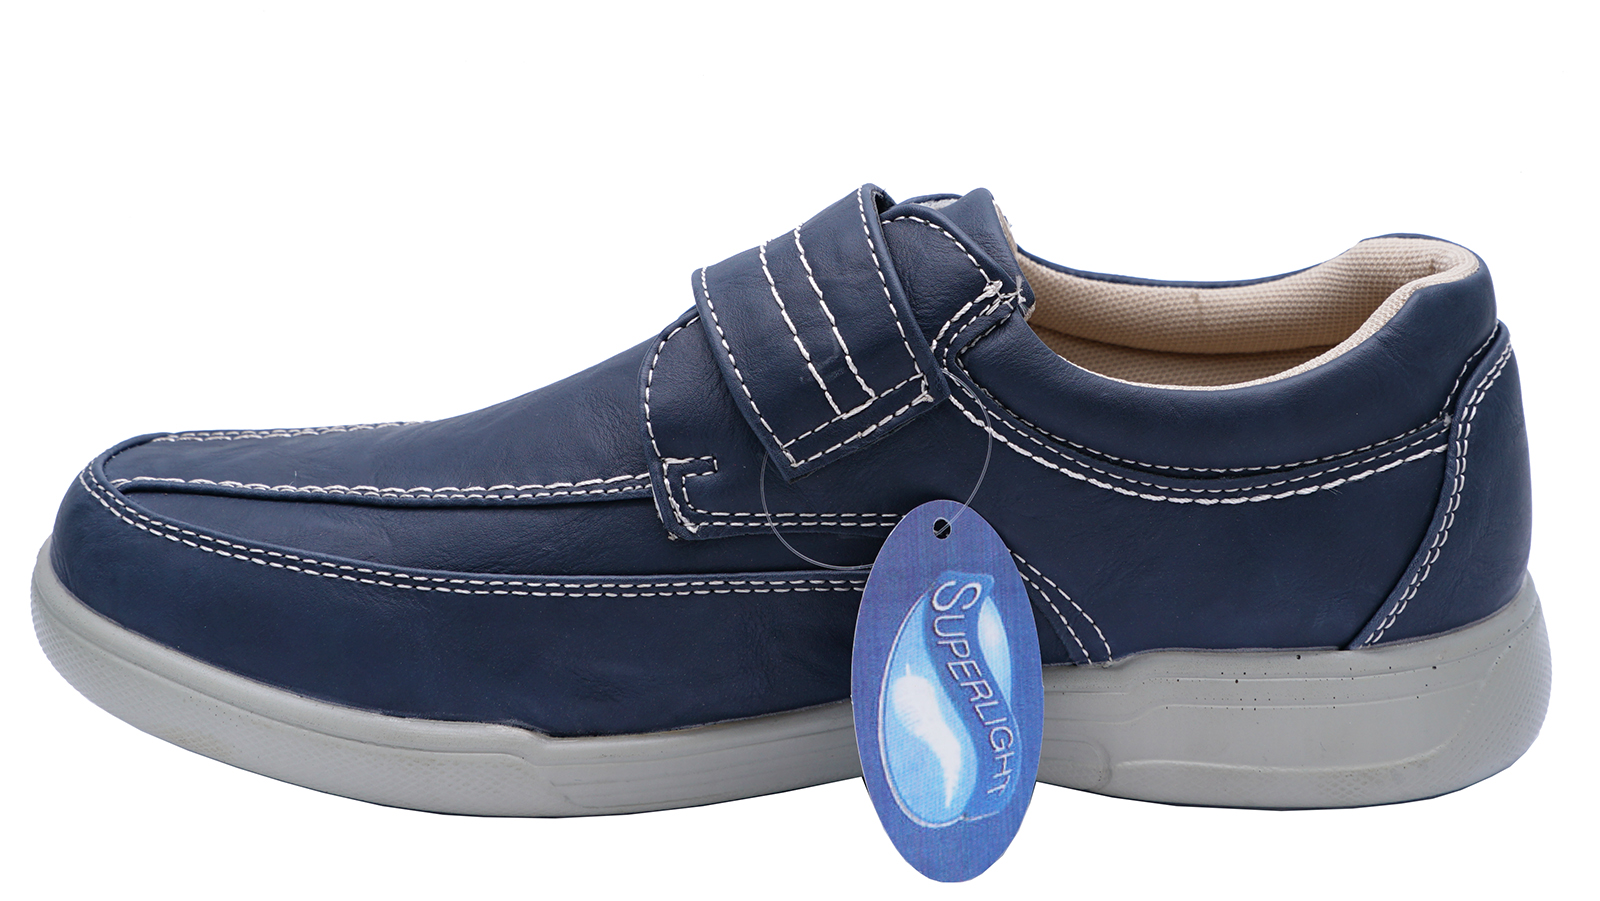 thumbnail 7 - MENS-NAVY-TOUCH-STRAP-COMFY-LIGHTWEIGHT-SMART-CASUAL-LOAFERS-DECK-SHOES-6-12